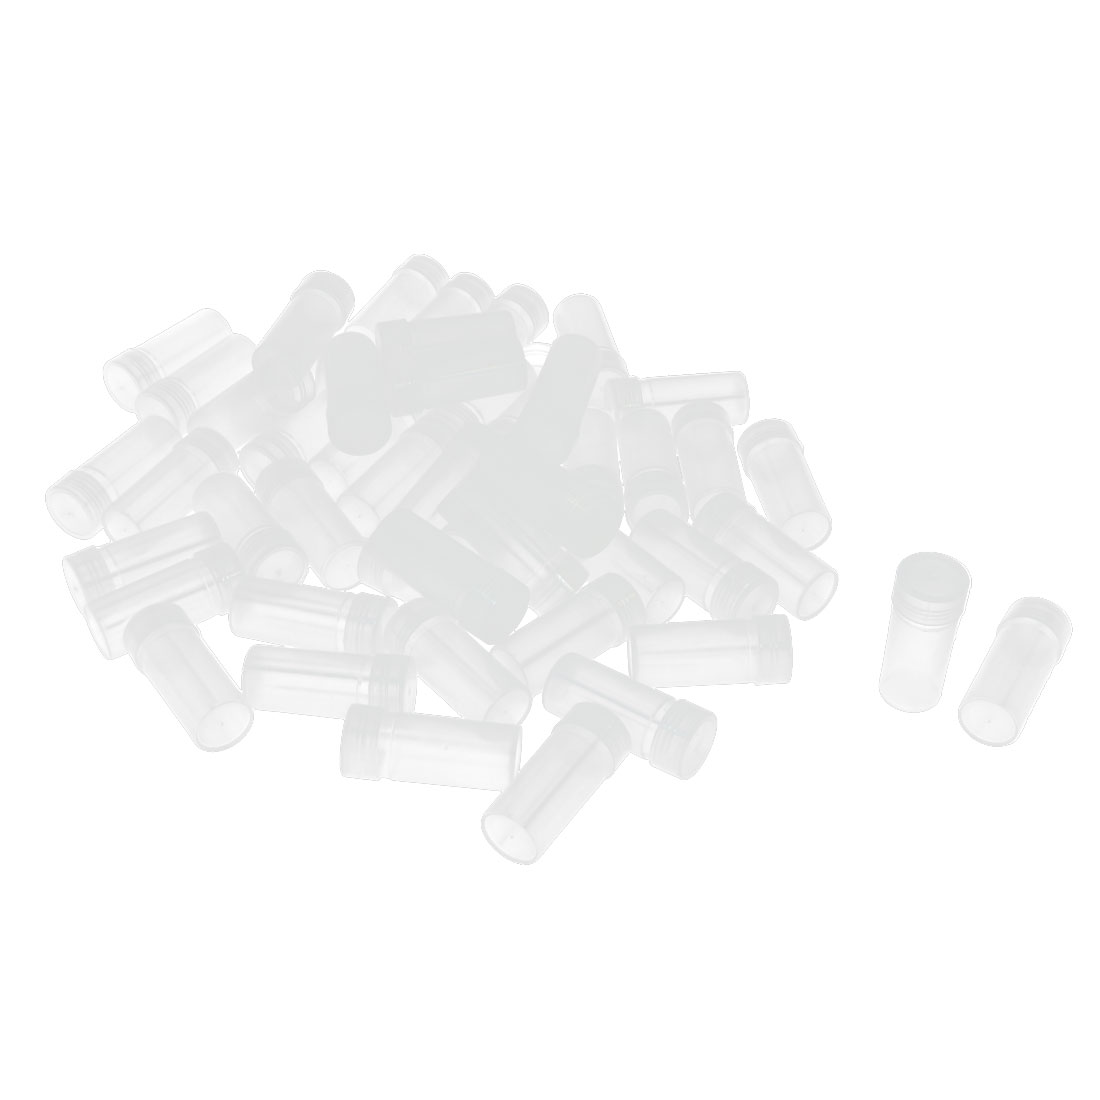 50Pcs Plastic Screw Lid Chemicals Storage Container Clear White Plastic Isotope Reagent Bottle